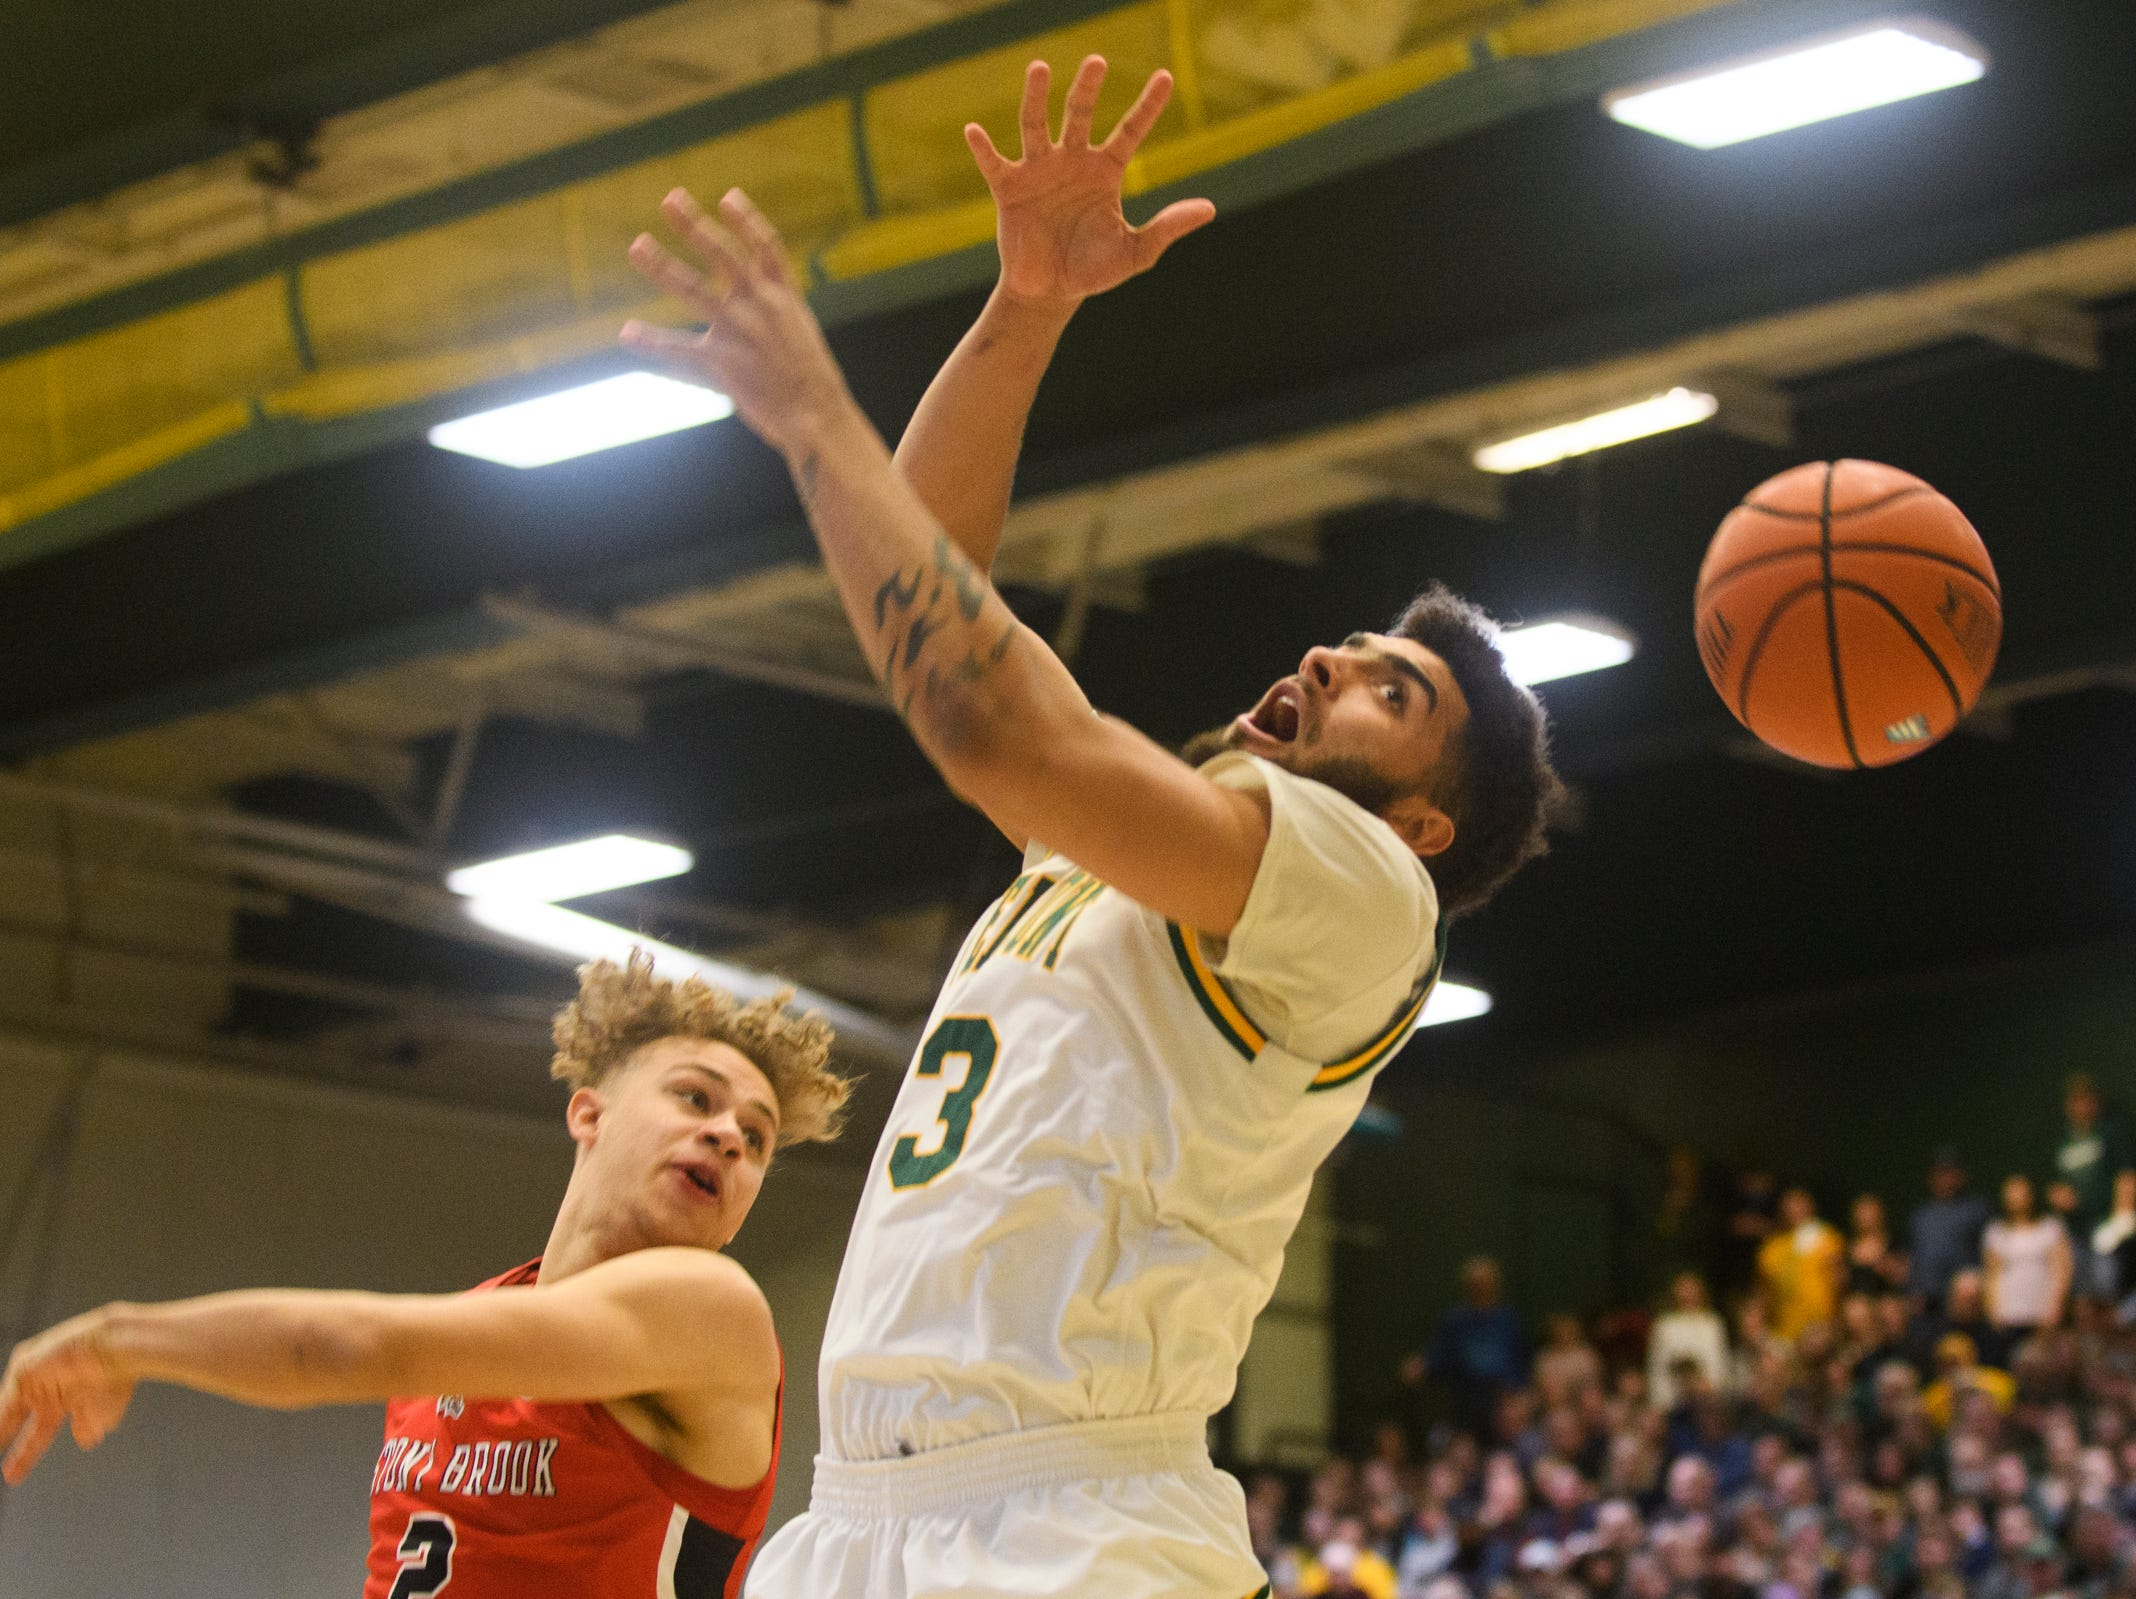 Vermont forward Anthony Lamb (3) loses the ball as he leaps for a lay up during the men's basketball game between the Stony Brook Seawolves and the Vermont Catamounts at Patrick Gym on Saturday night March 2, 2019 in Burlington, Vermont.